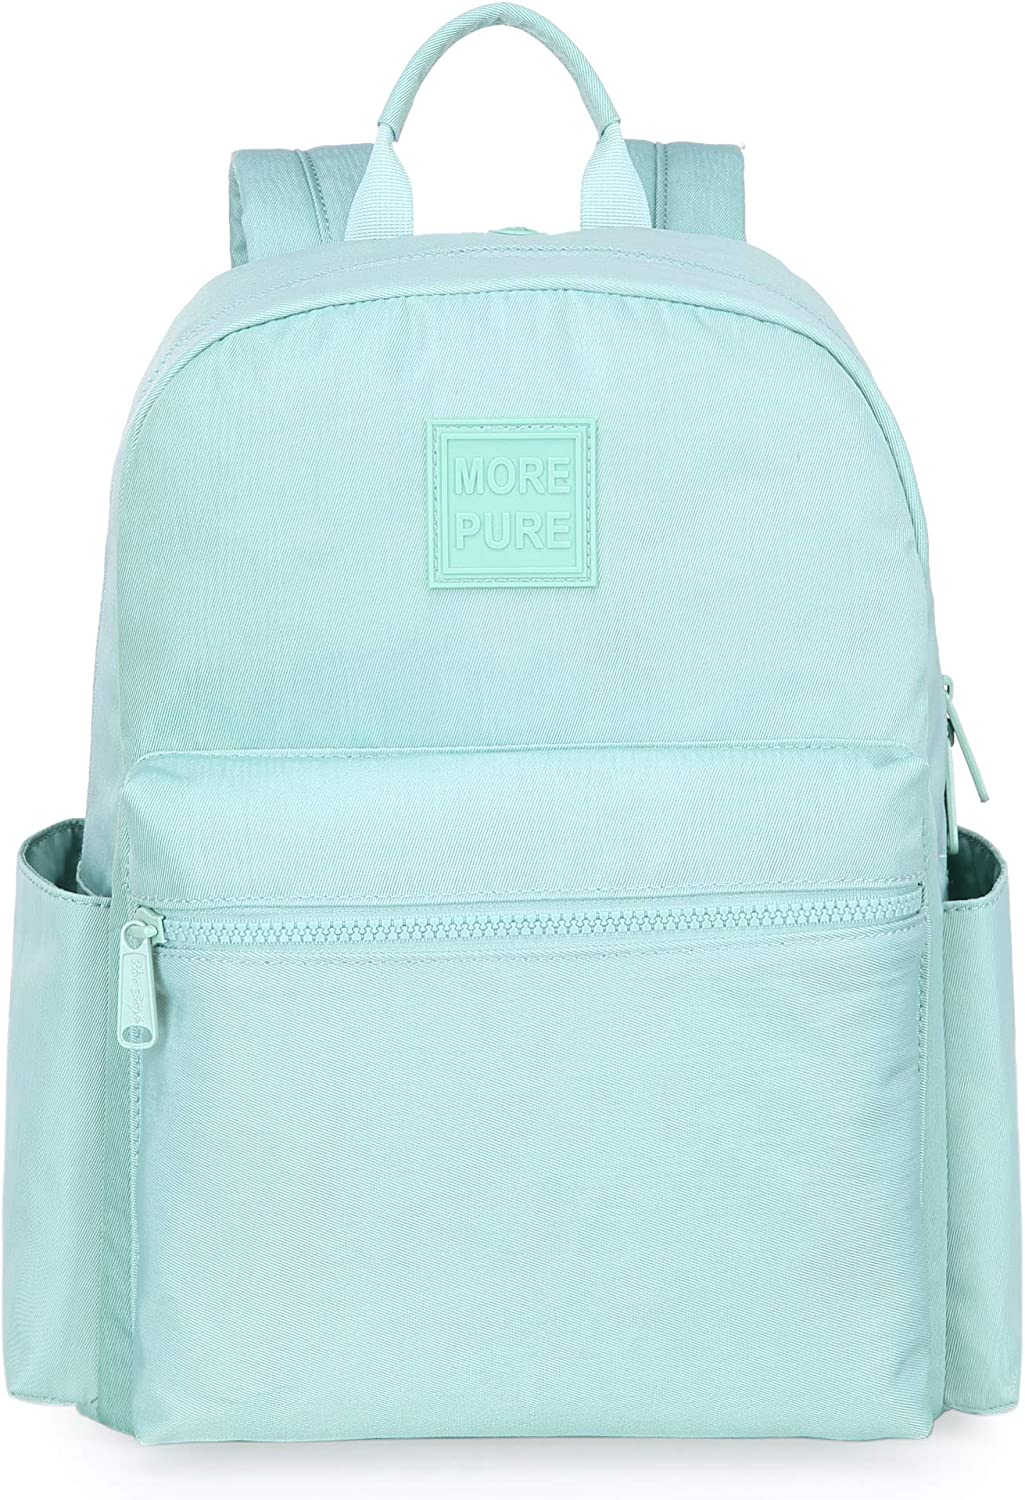 MOREPURE 237s Mini Travel Backpack Purse, 14.1x10.2x5.1 in